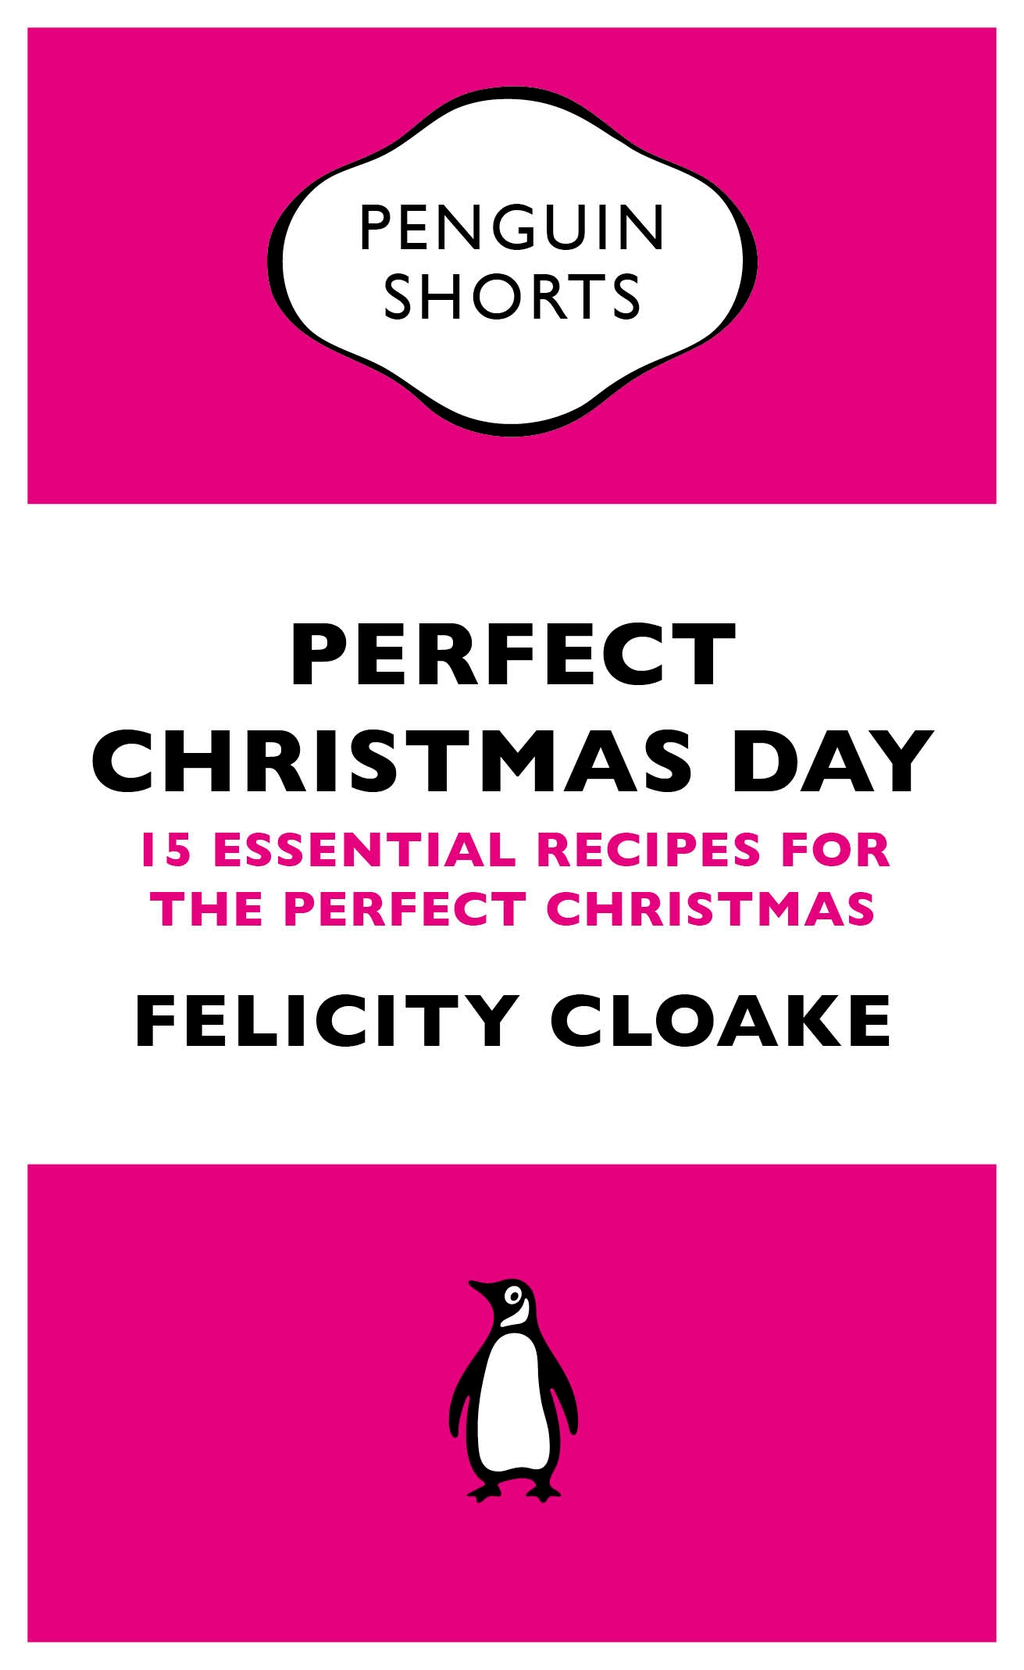 Perfect Christmas Day (Penguin Specials) 15 Essential Recipes for the Perfect Christmas